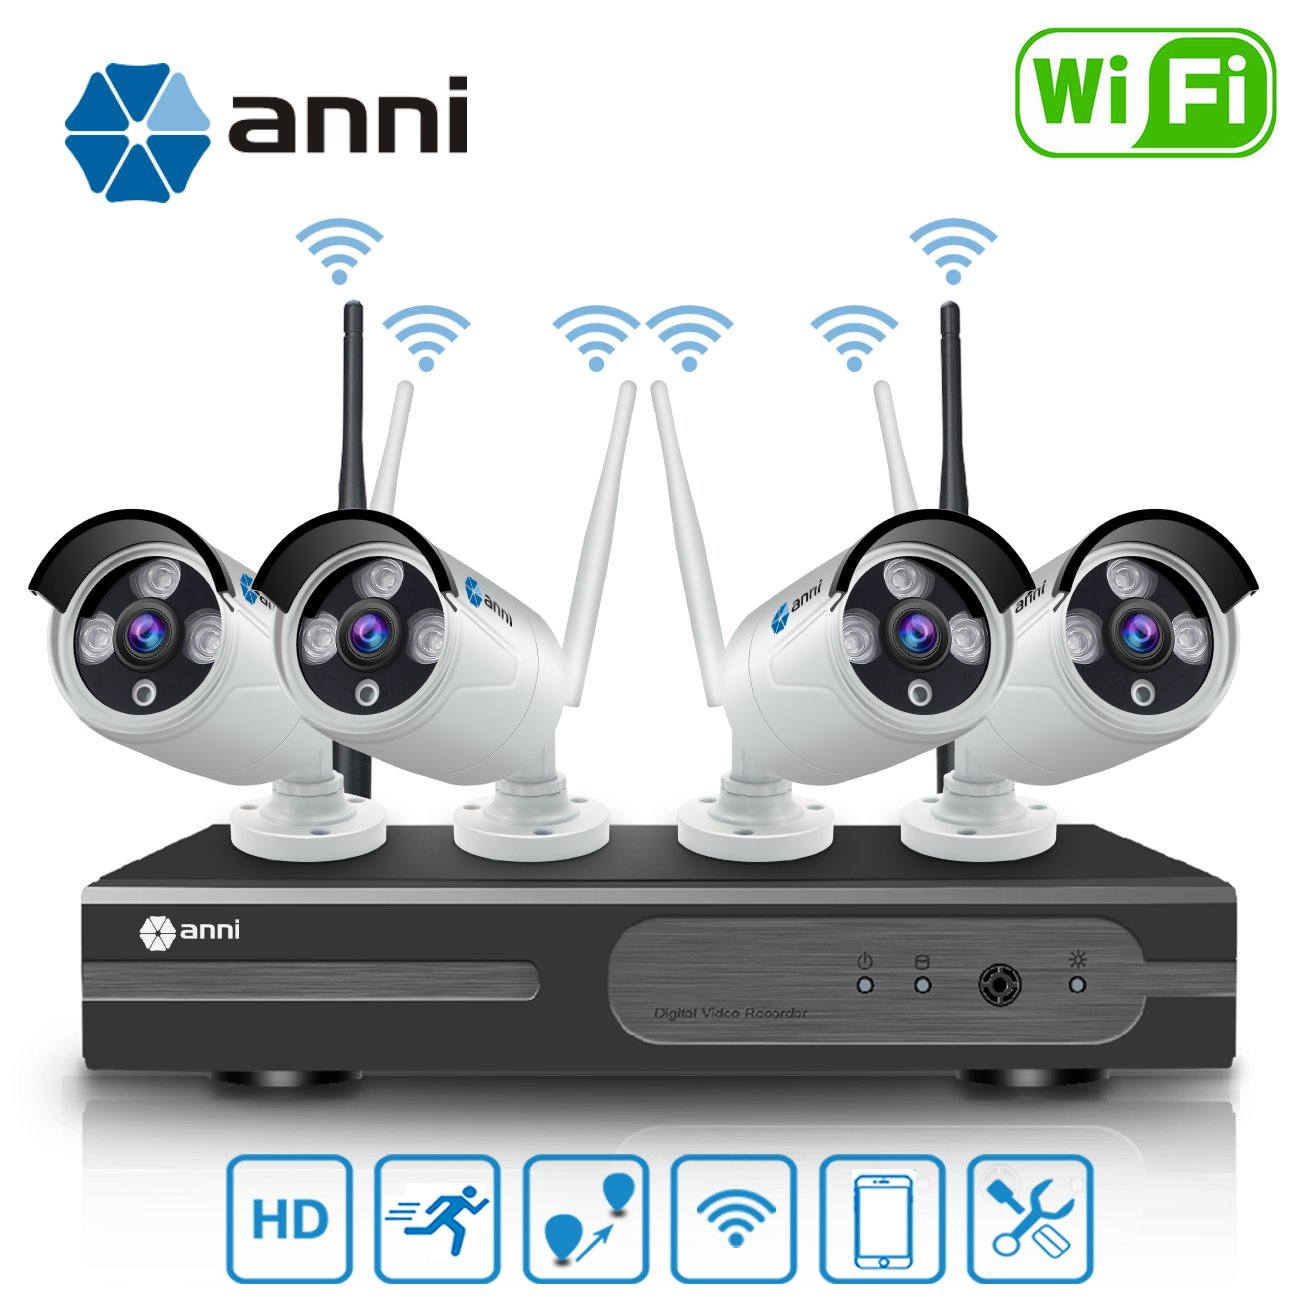 Anni 720P 4CH HD Wireless Security Camera WiFi NVR Kit CCTV Surveillance Systems,(4) 1.0MP Megapixel Weatherproof Wireless Bullet IP Cameras,65ft Night Vision,P2P,No Video Cable Needed,NO HDD